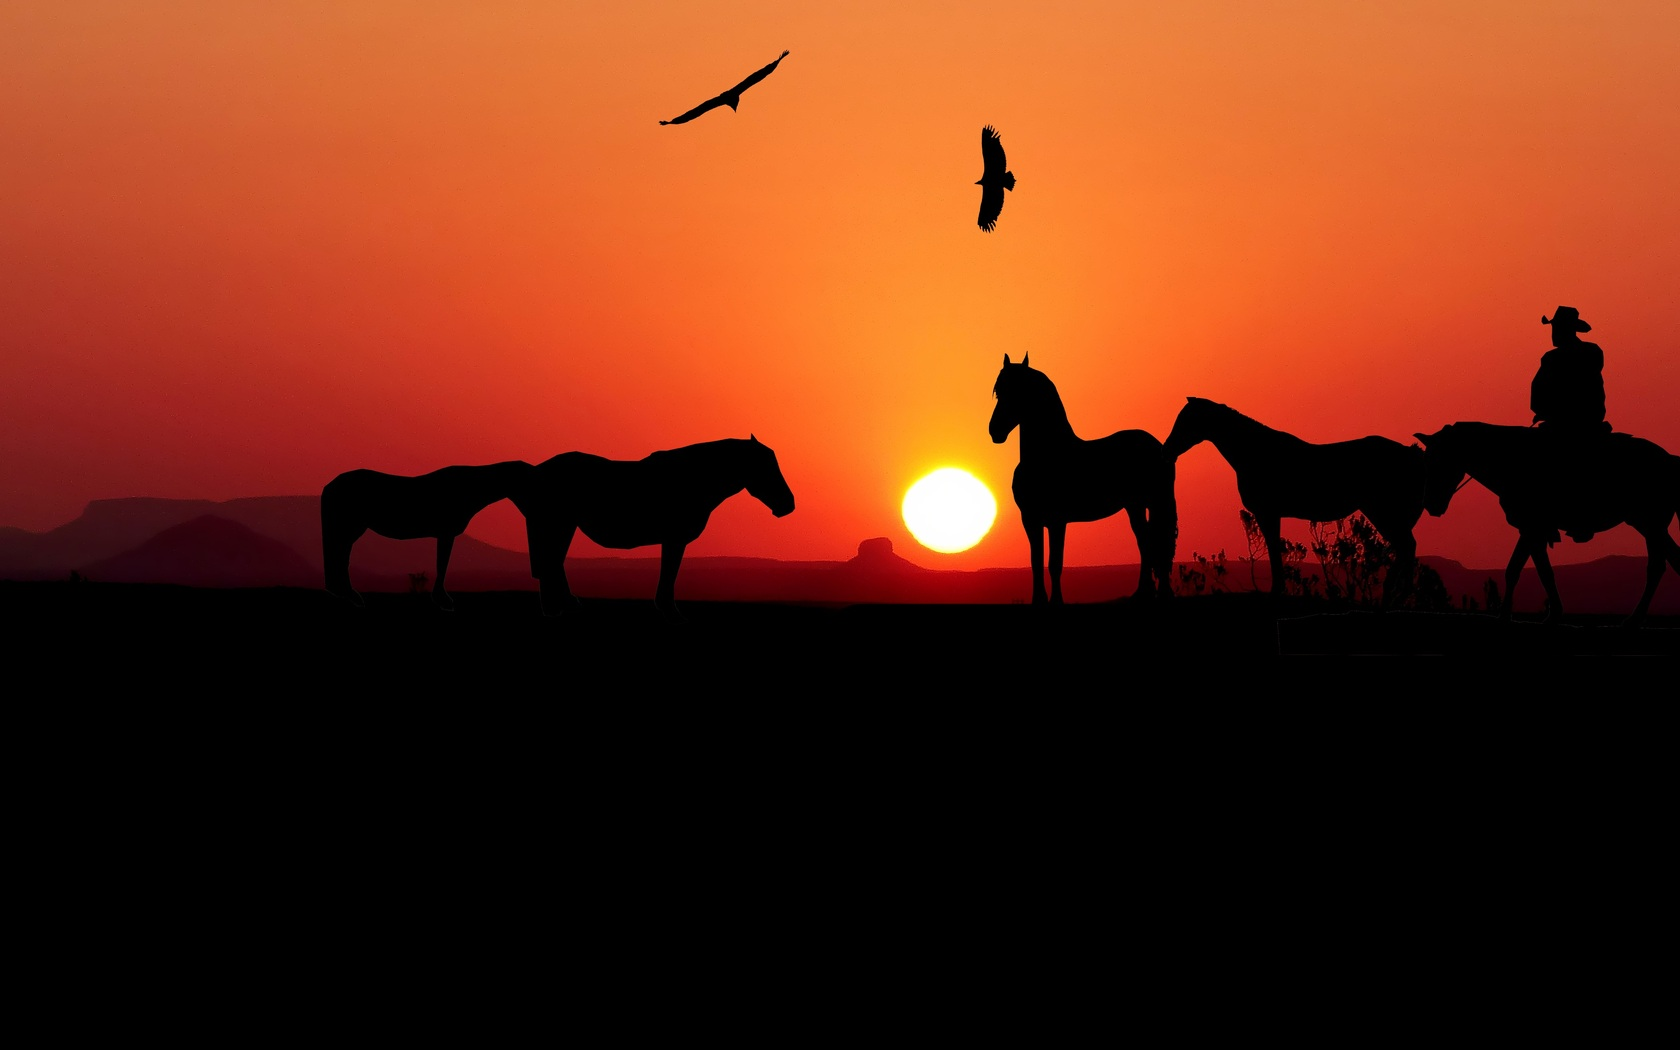 1680x1050 Sunset Horse Silhouette 4k 1680x1050 Resolution Hd 4k Wallpapers Images Backgrounds Photos And Pictures